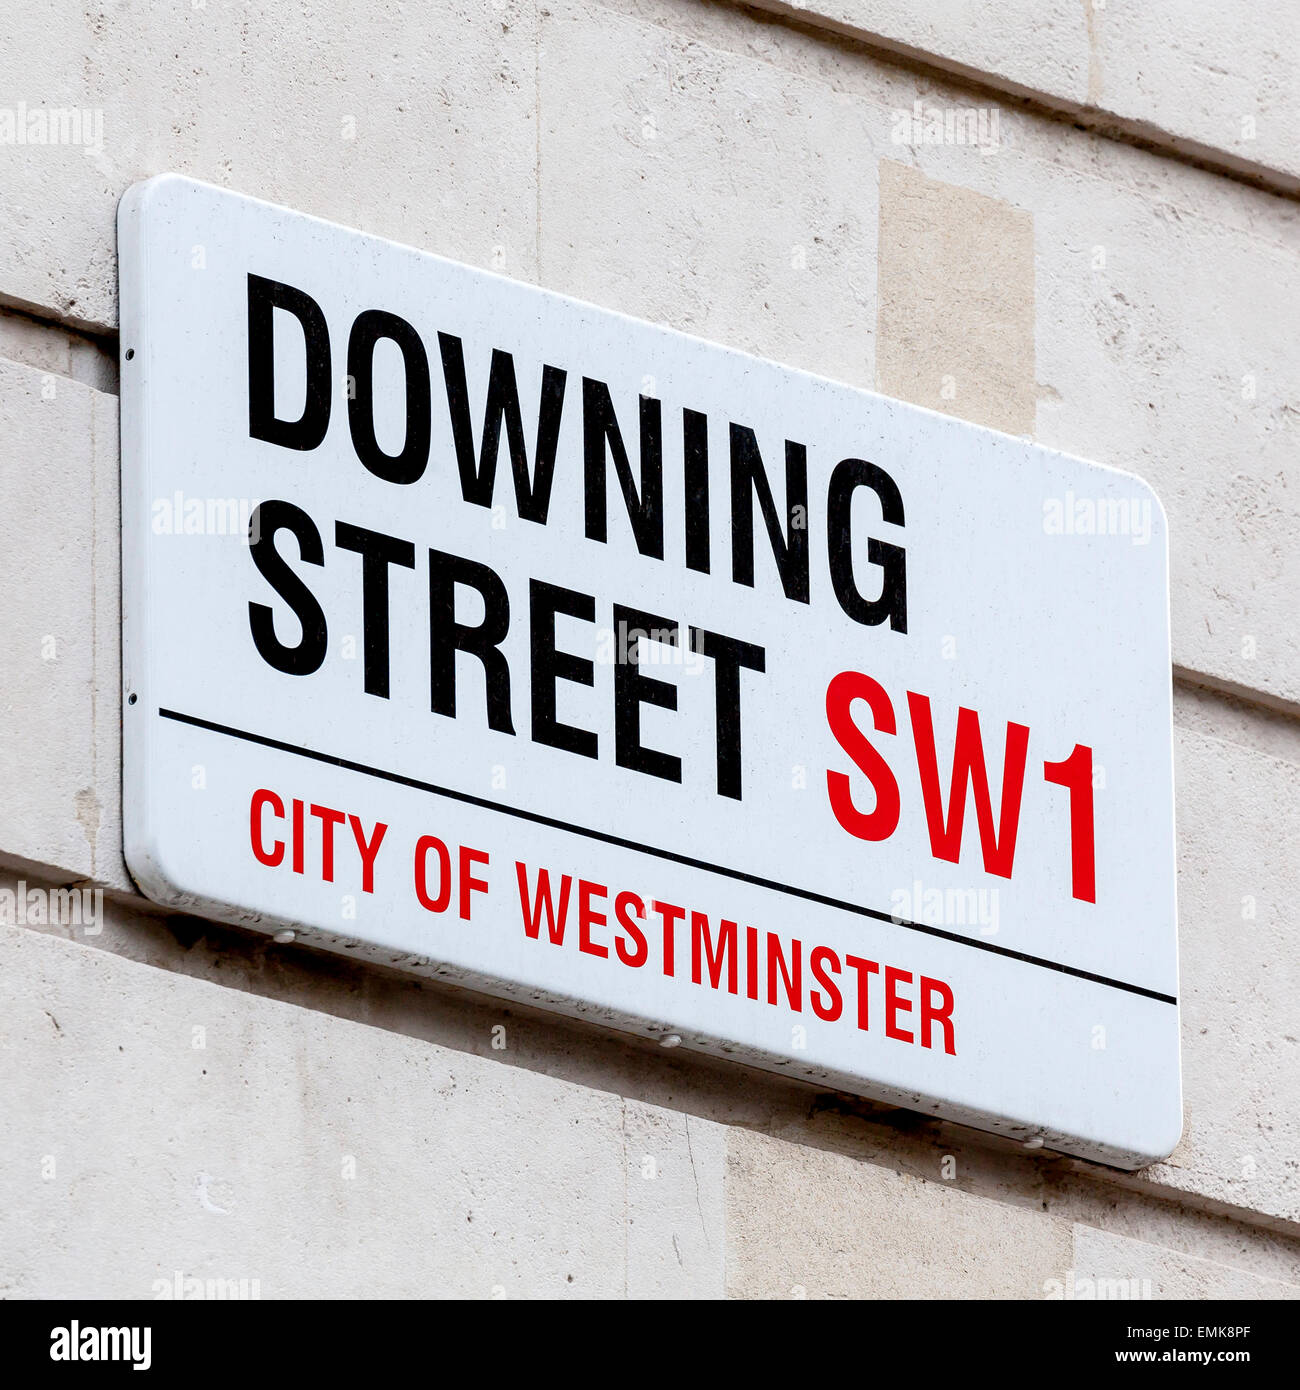 Street sign Downing Street, Government District, London, England, United Kingdom - Stock Image